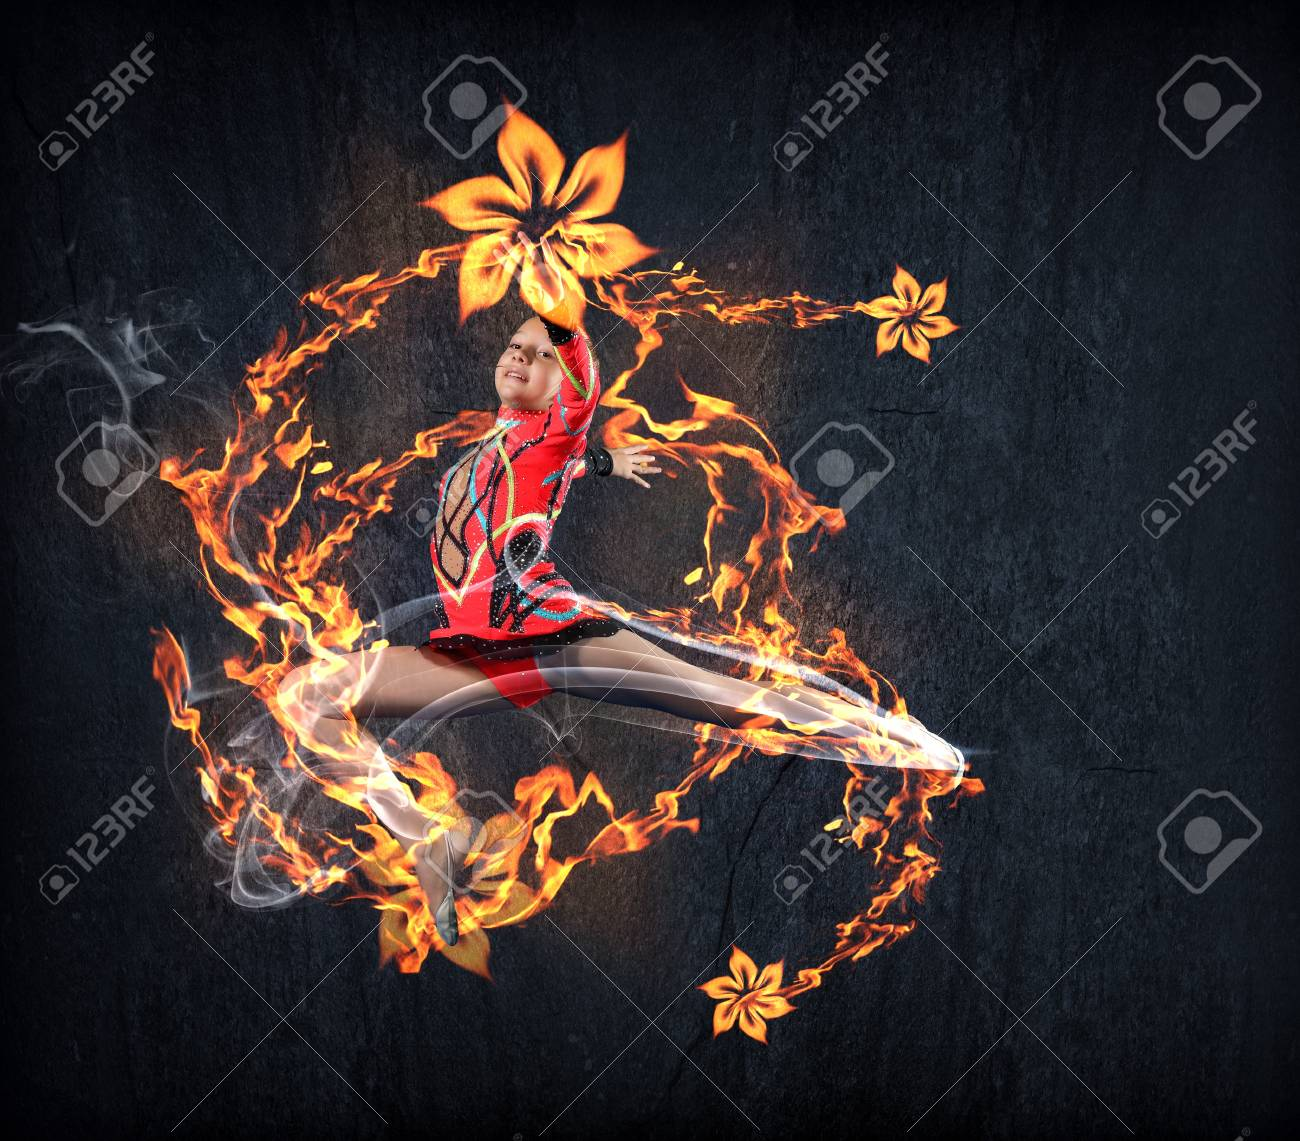 Young cute woman in gymnast suit show athletic skill on black background Stock Photo - 15539541